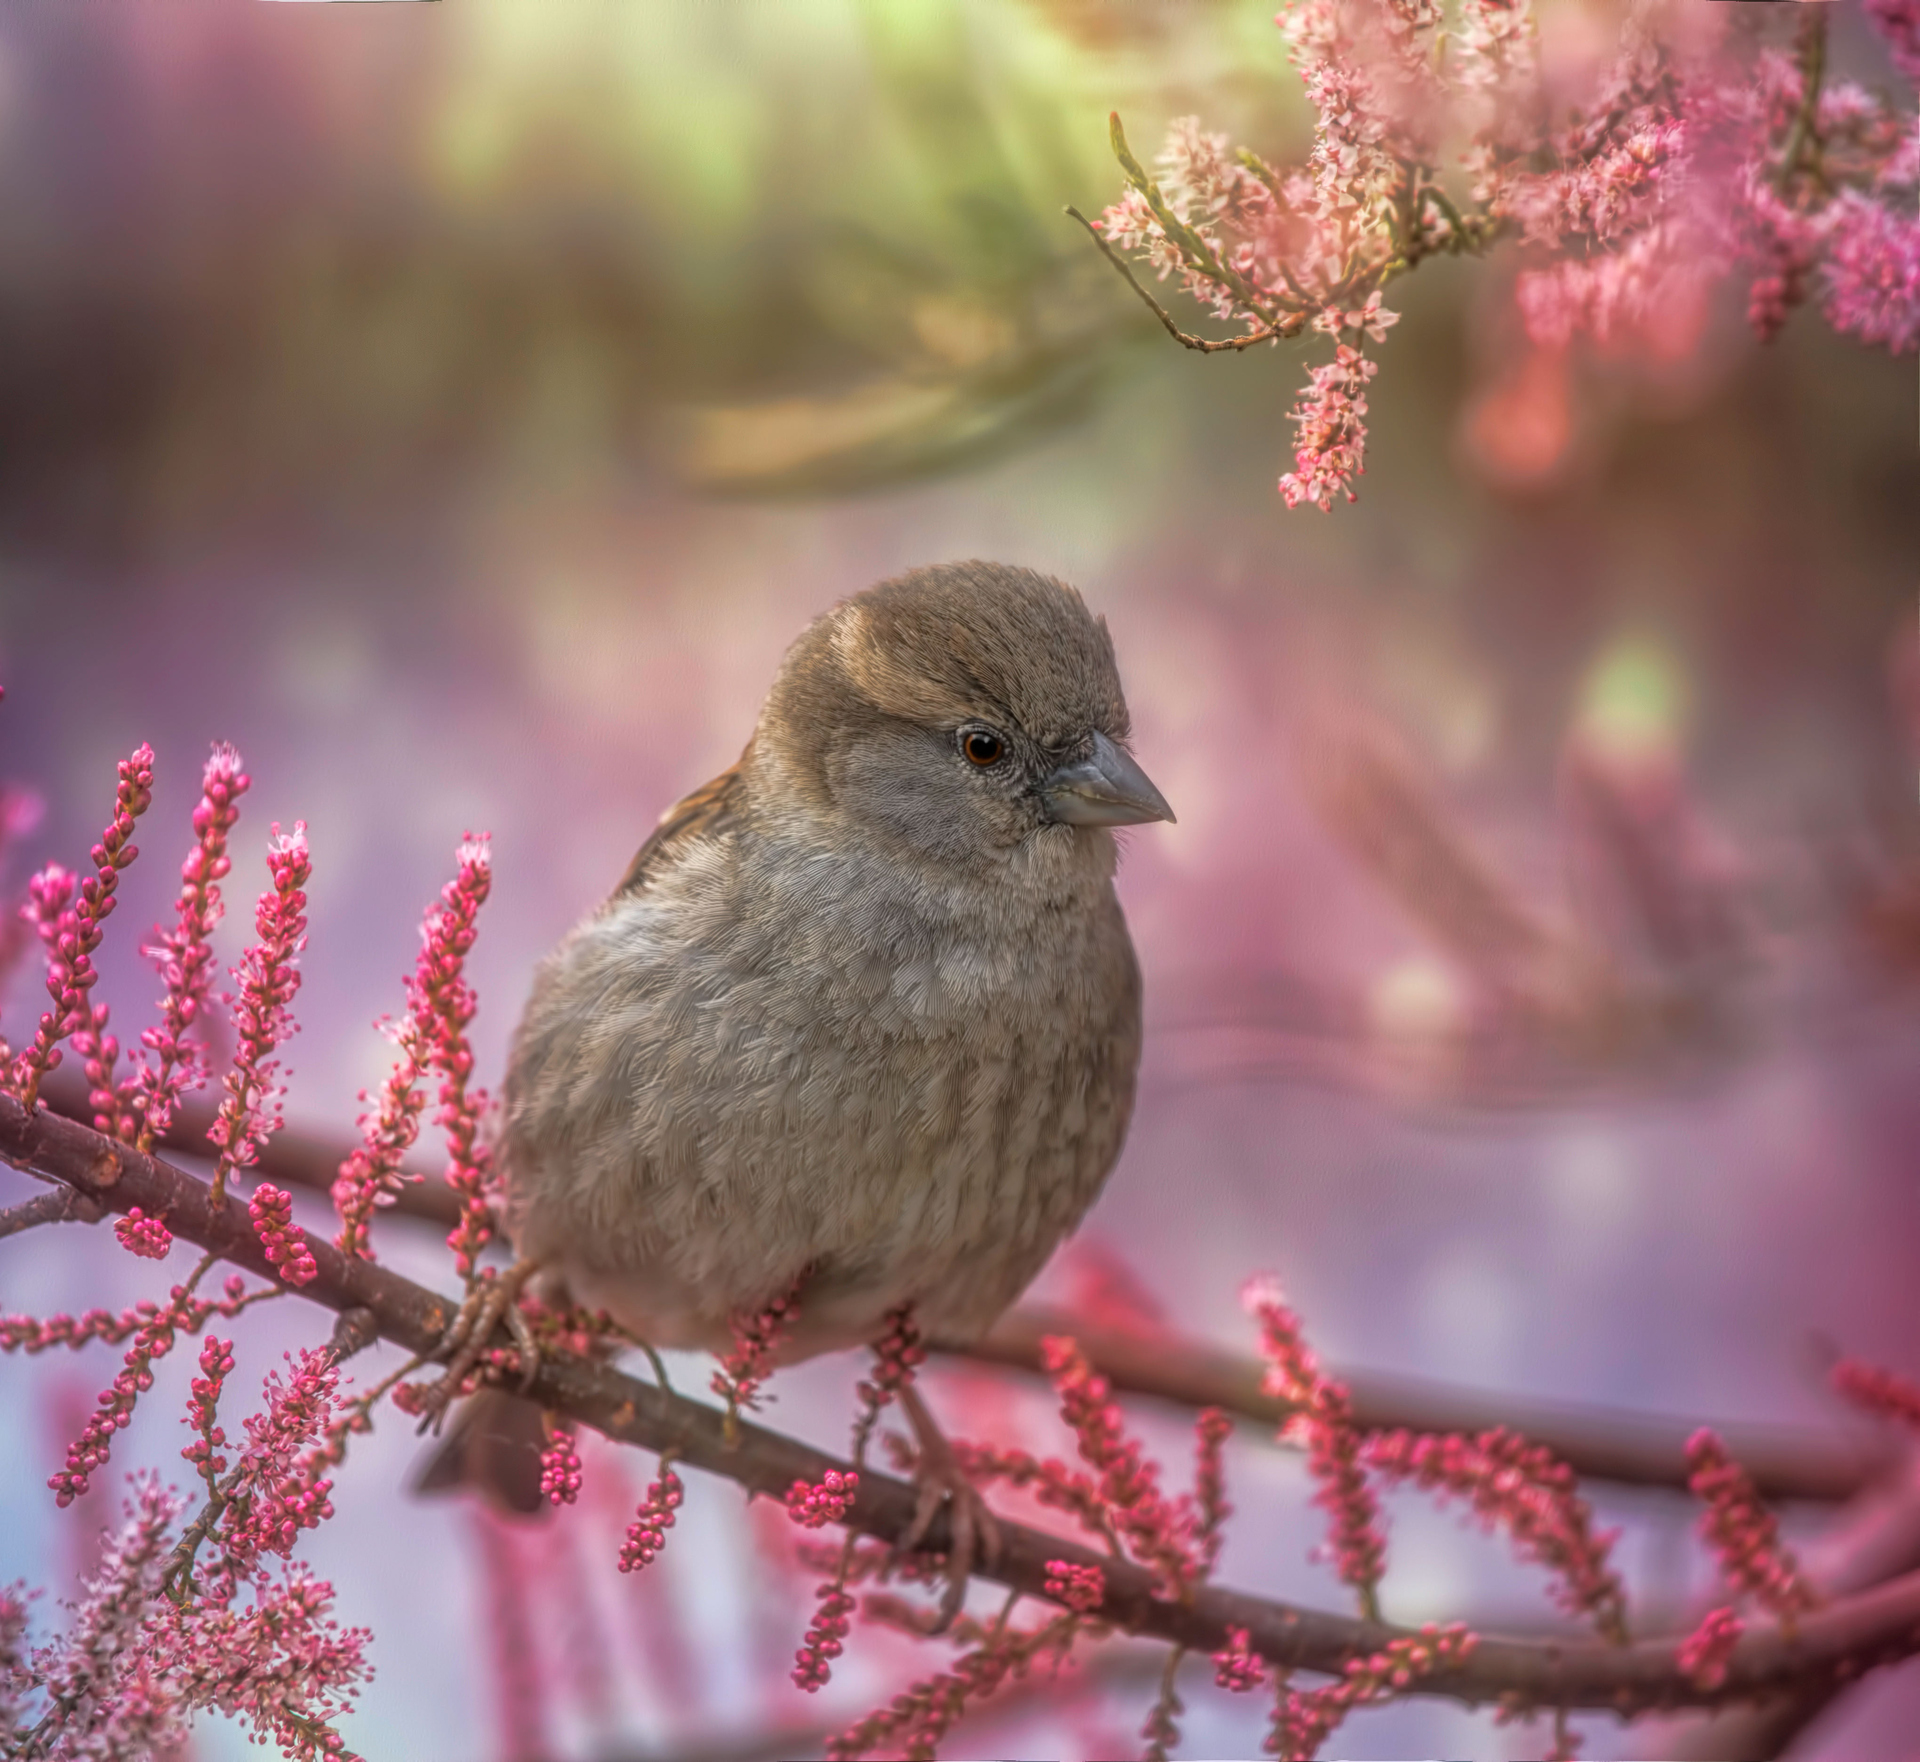 just a simple sparrow by Aya de Ruiter – Downloaded from 500px